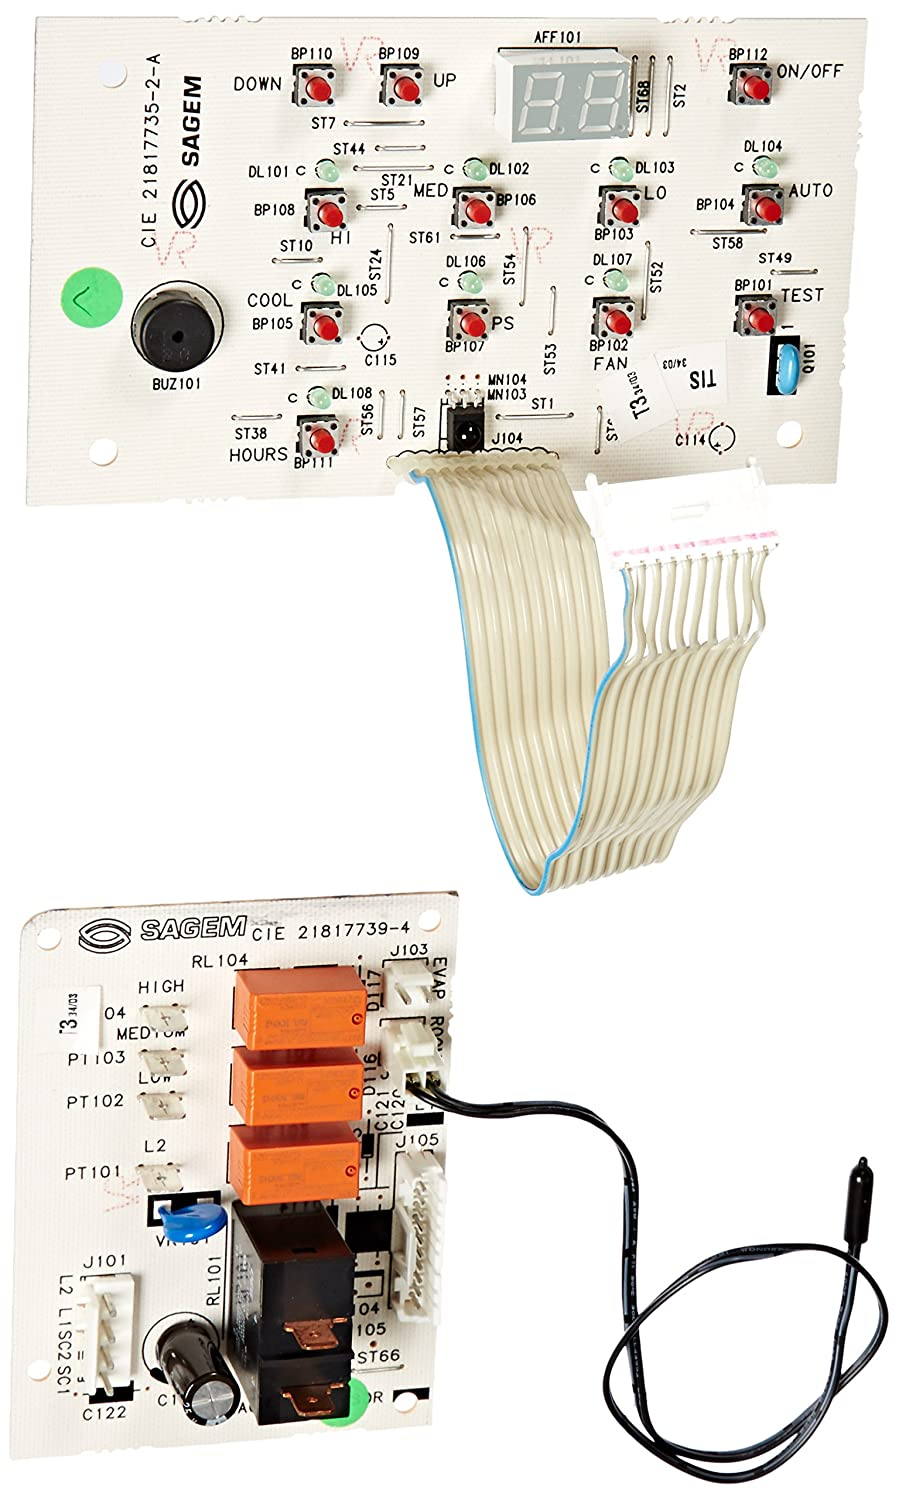 Frigidaire 5304420622 Air Conditioner Main Control Board